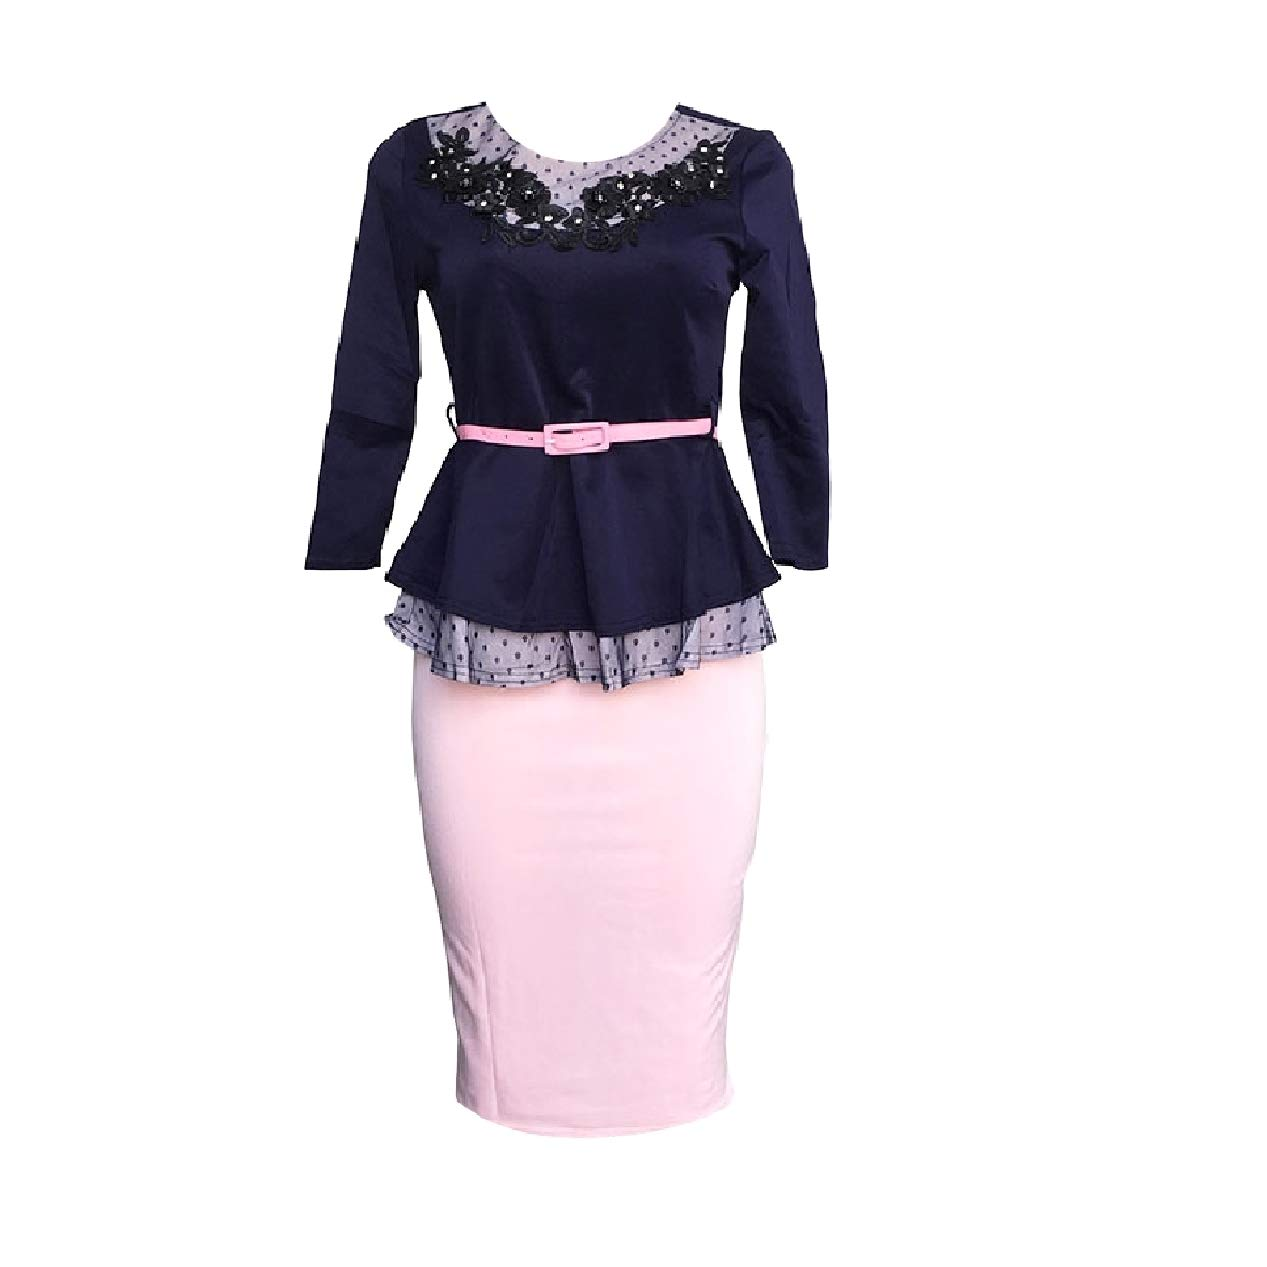 Winwinus Womens Business 2pcs Bodycon 2//3 Sleeve Patchwork Skirt Suits